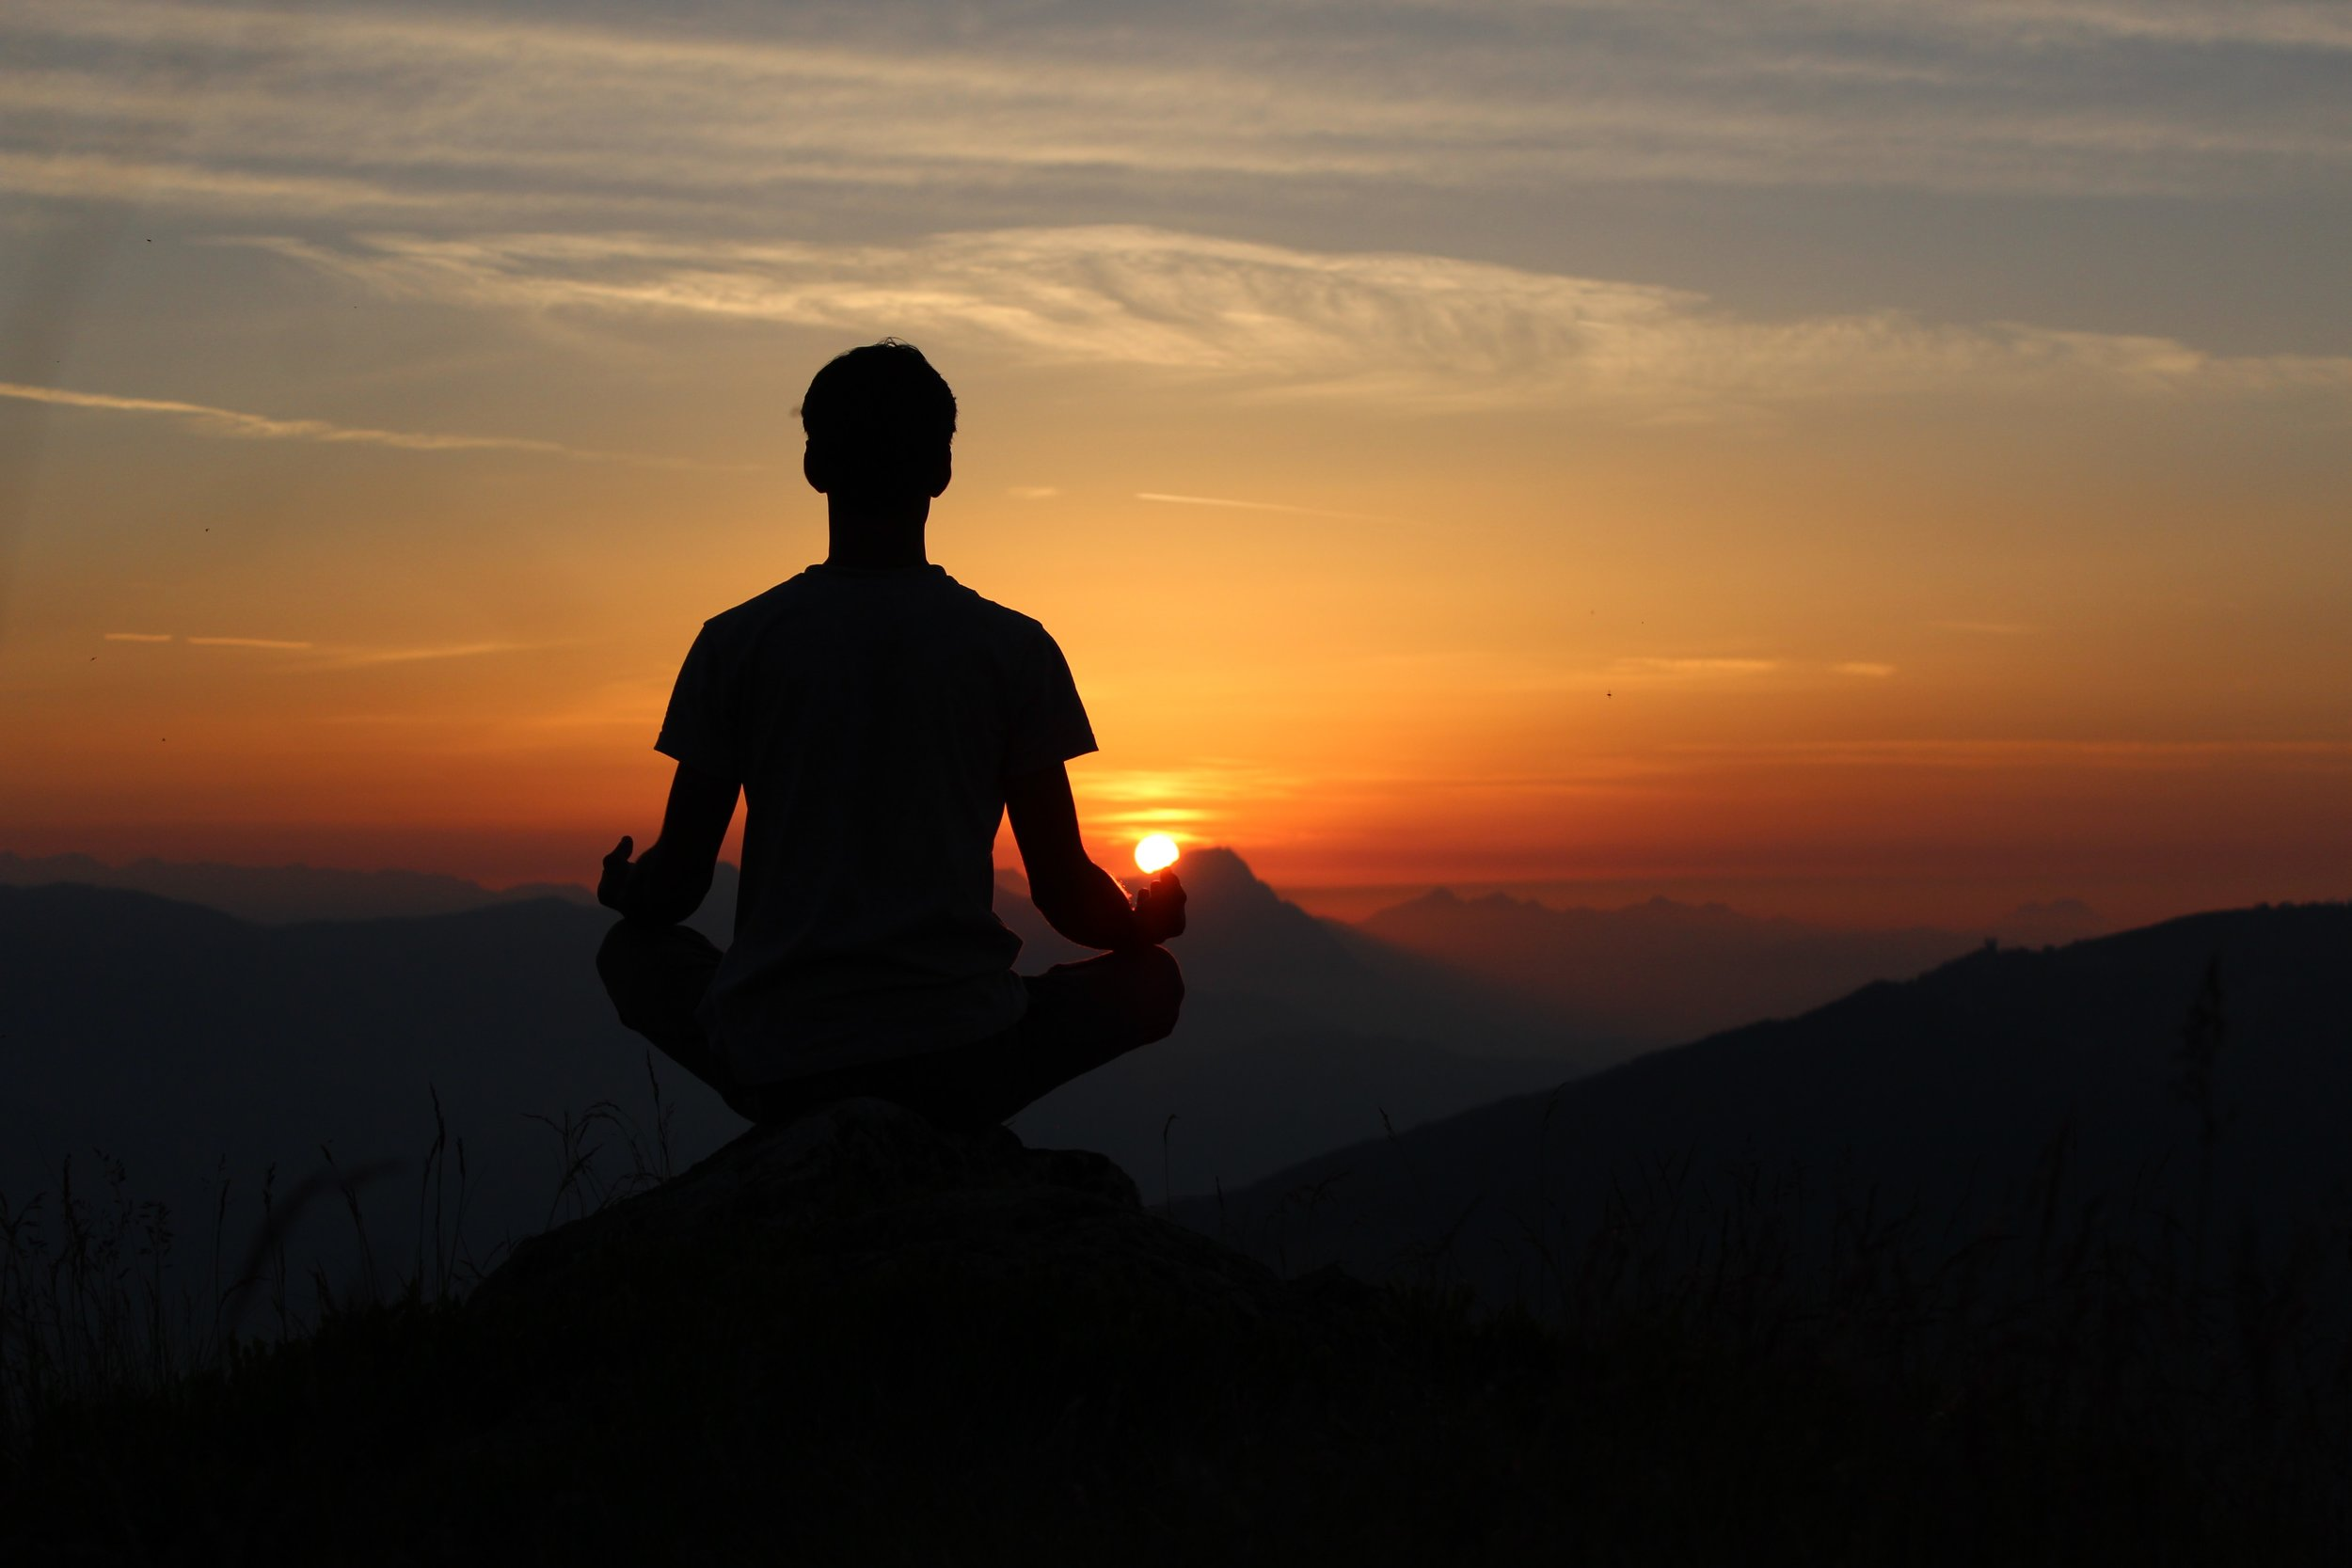 Calm Meditation Teacher -